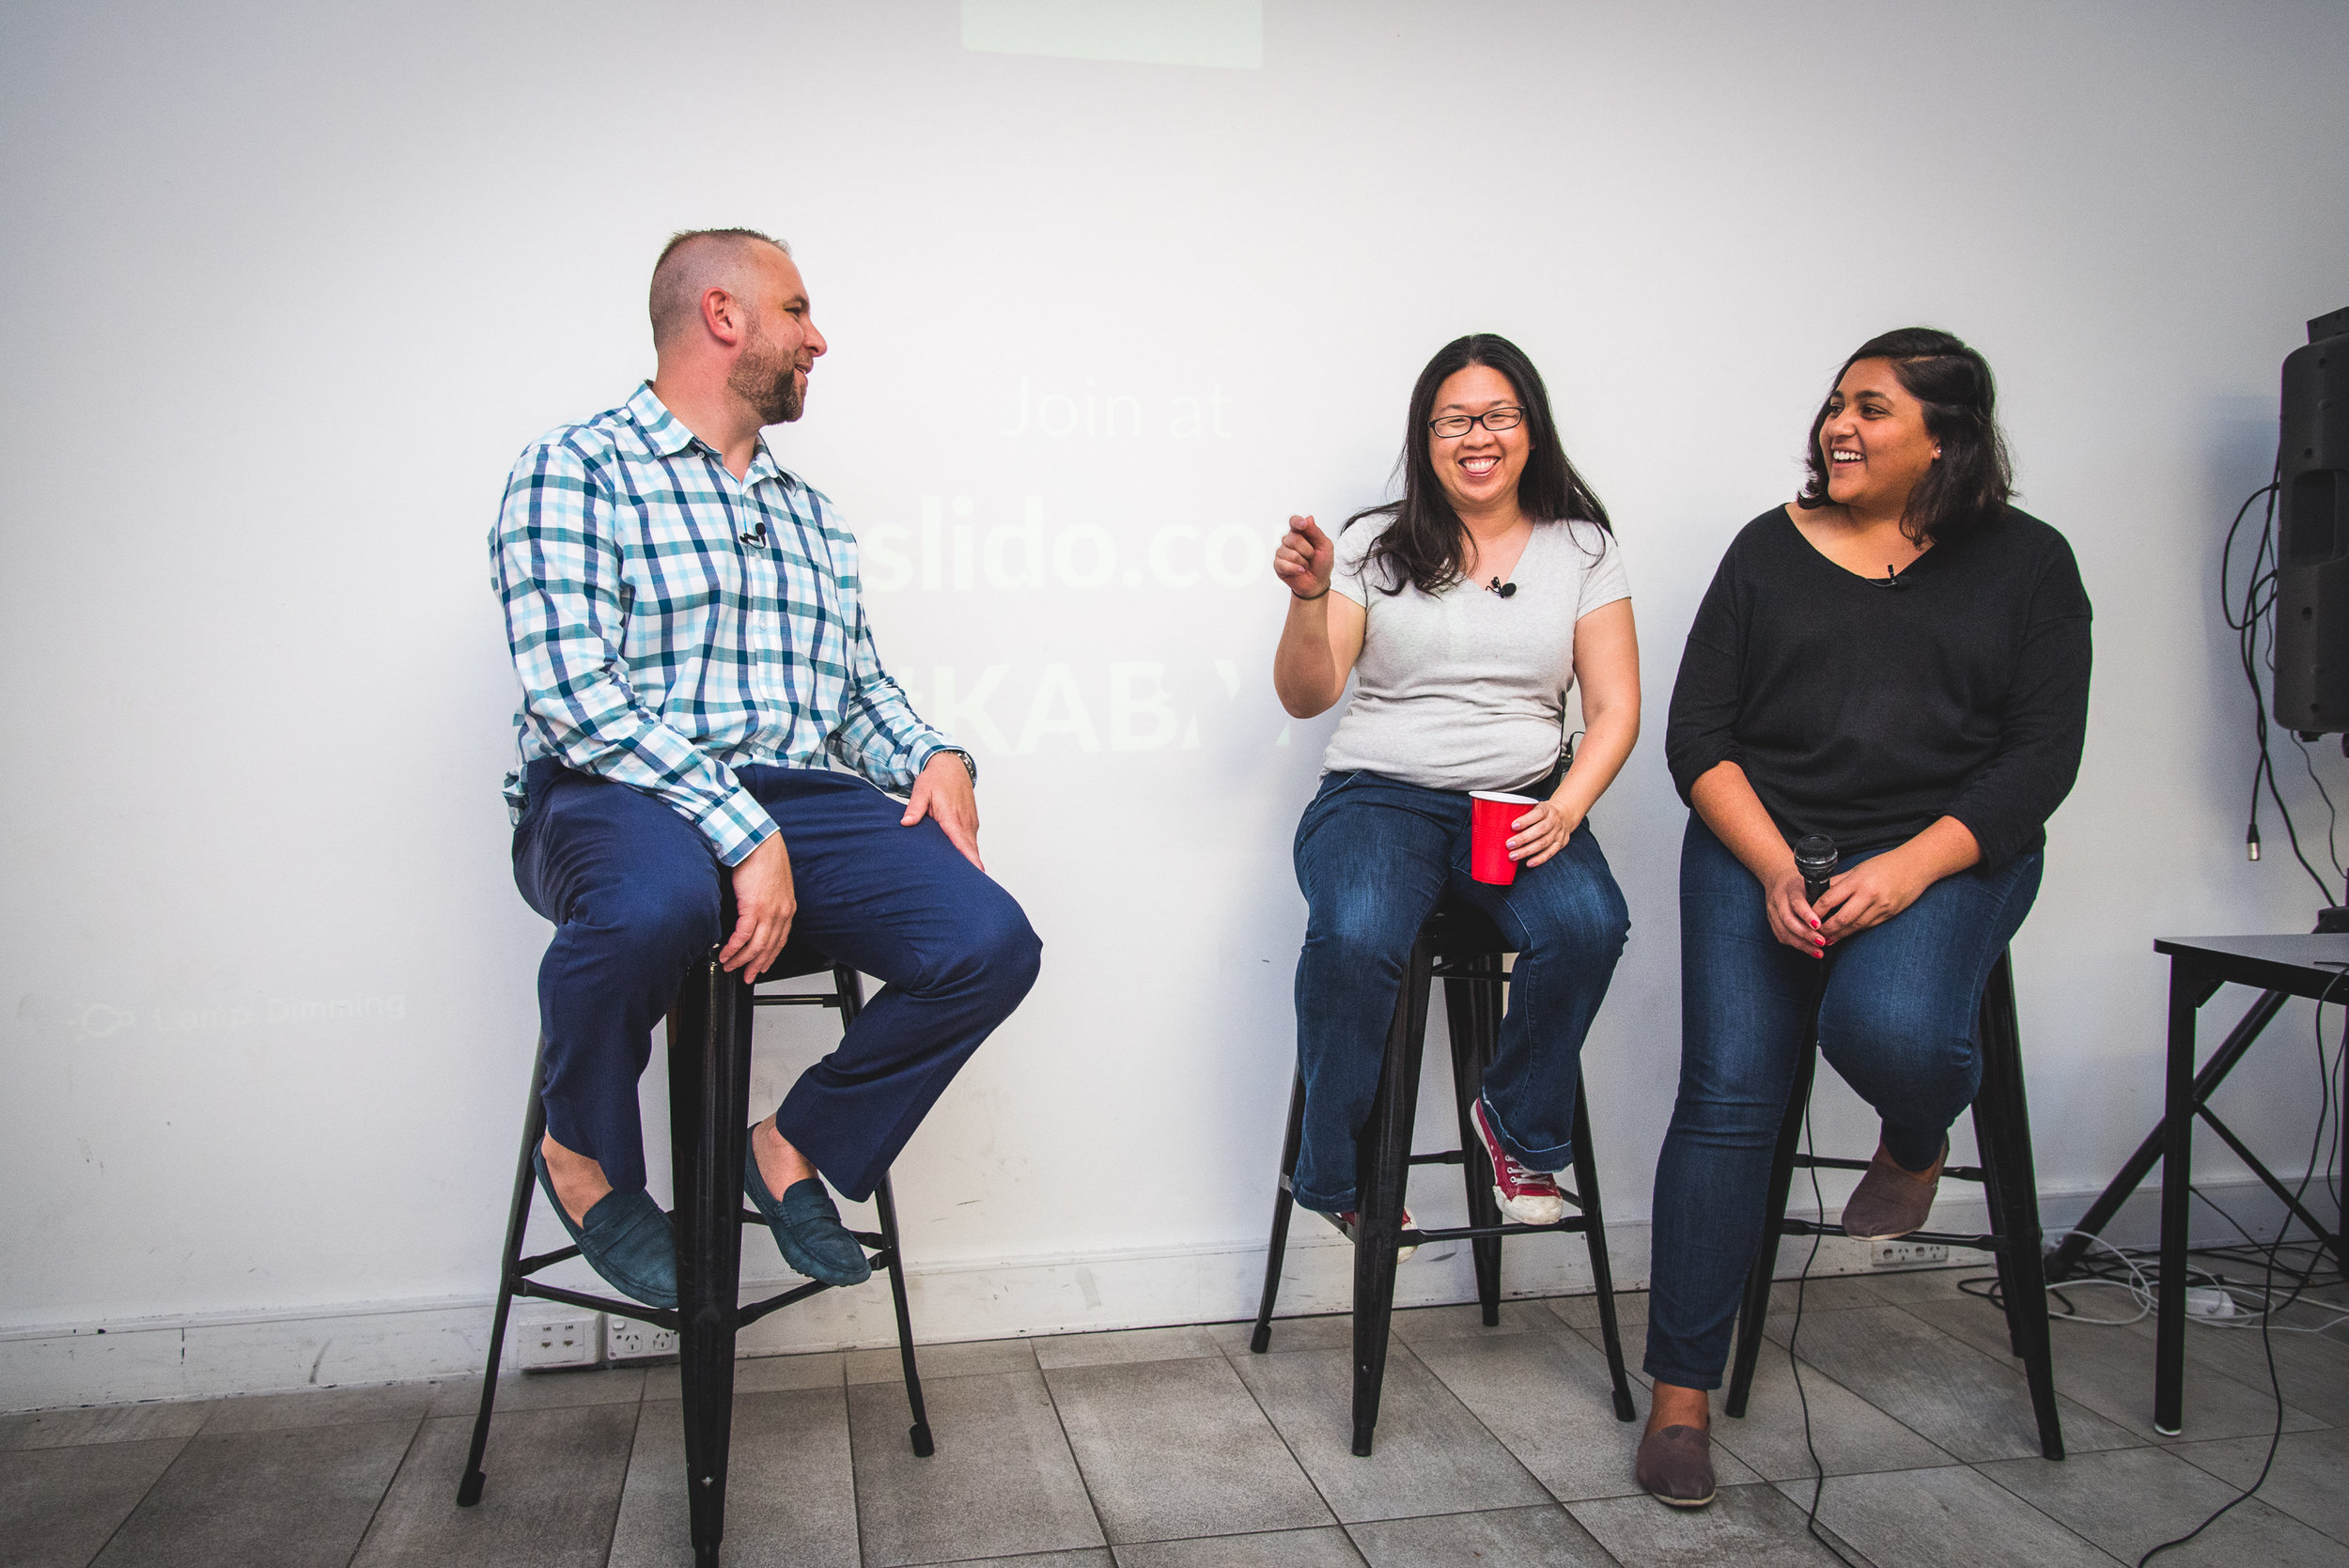 Startup Grind host Chris Joannou interviewing Holly and Shruti  (Photo credit: Alyatau Photography)